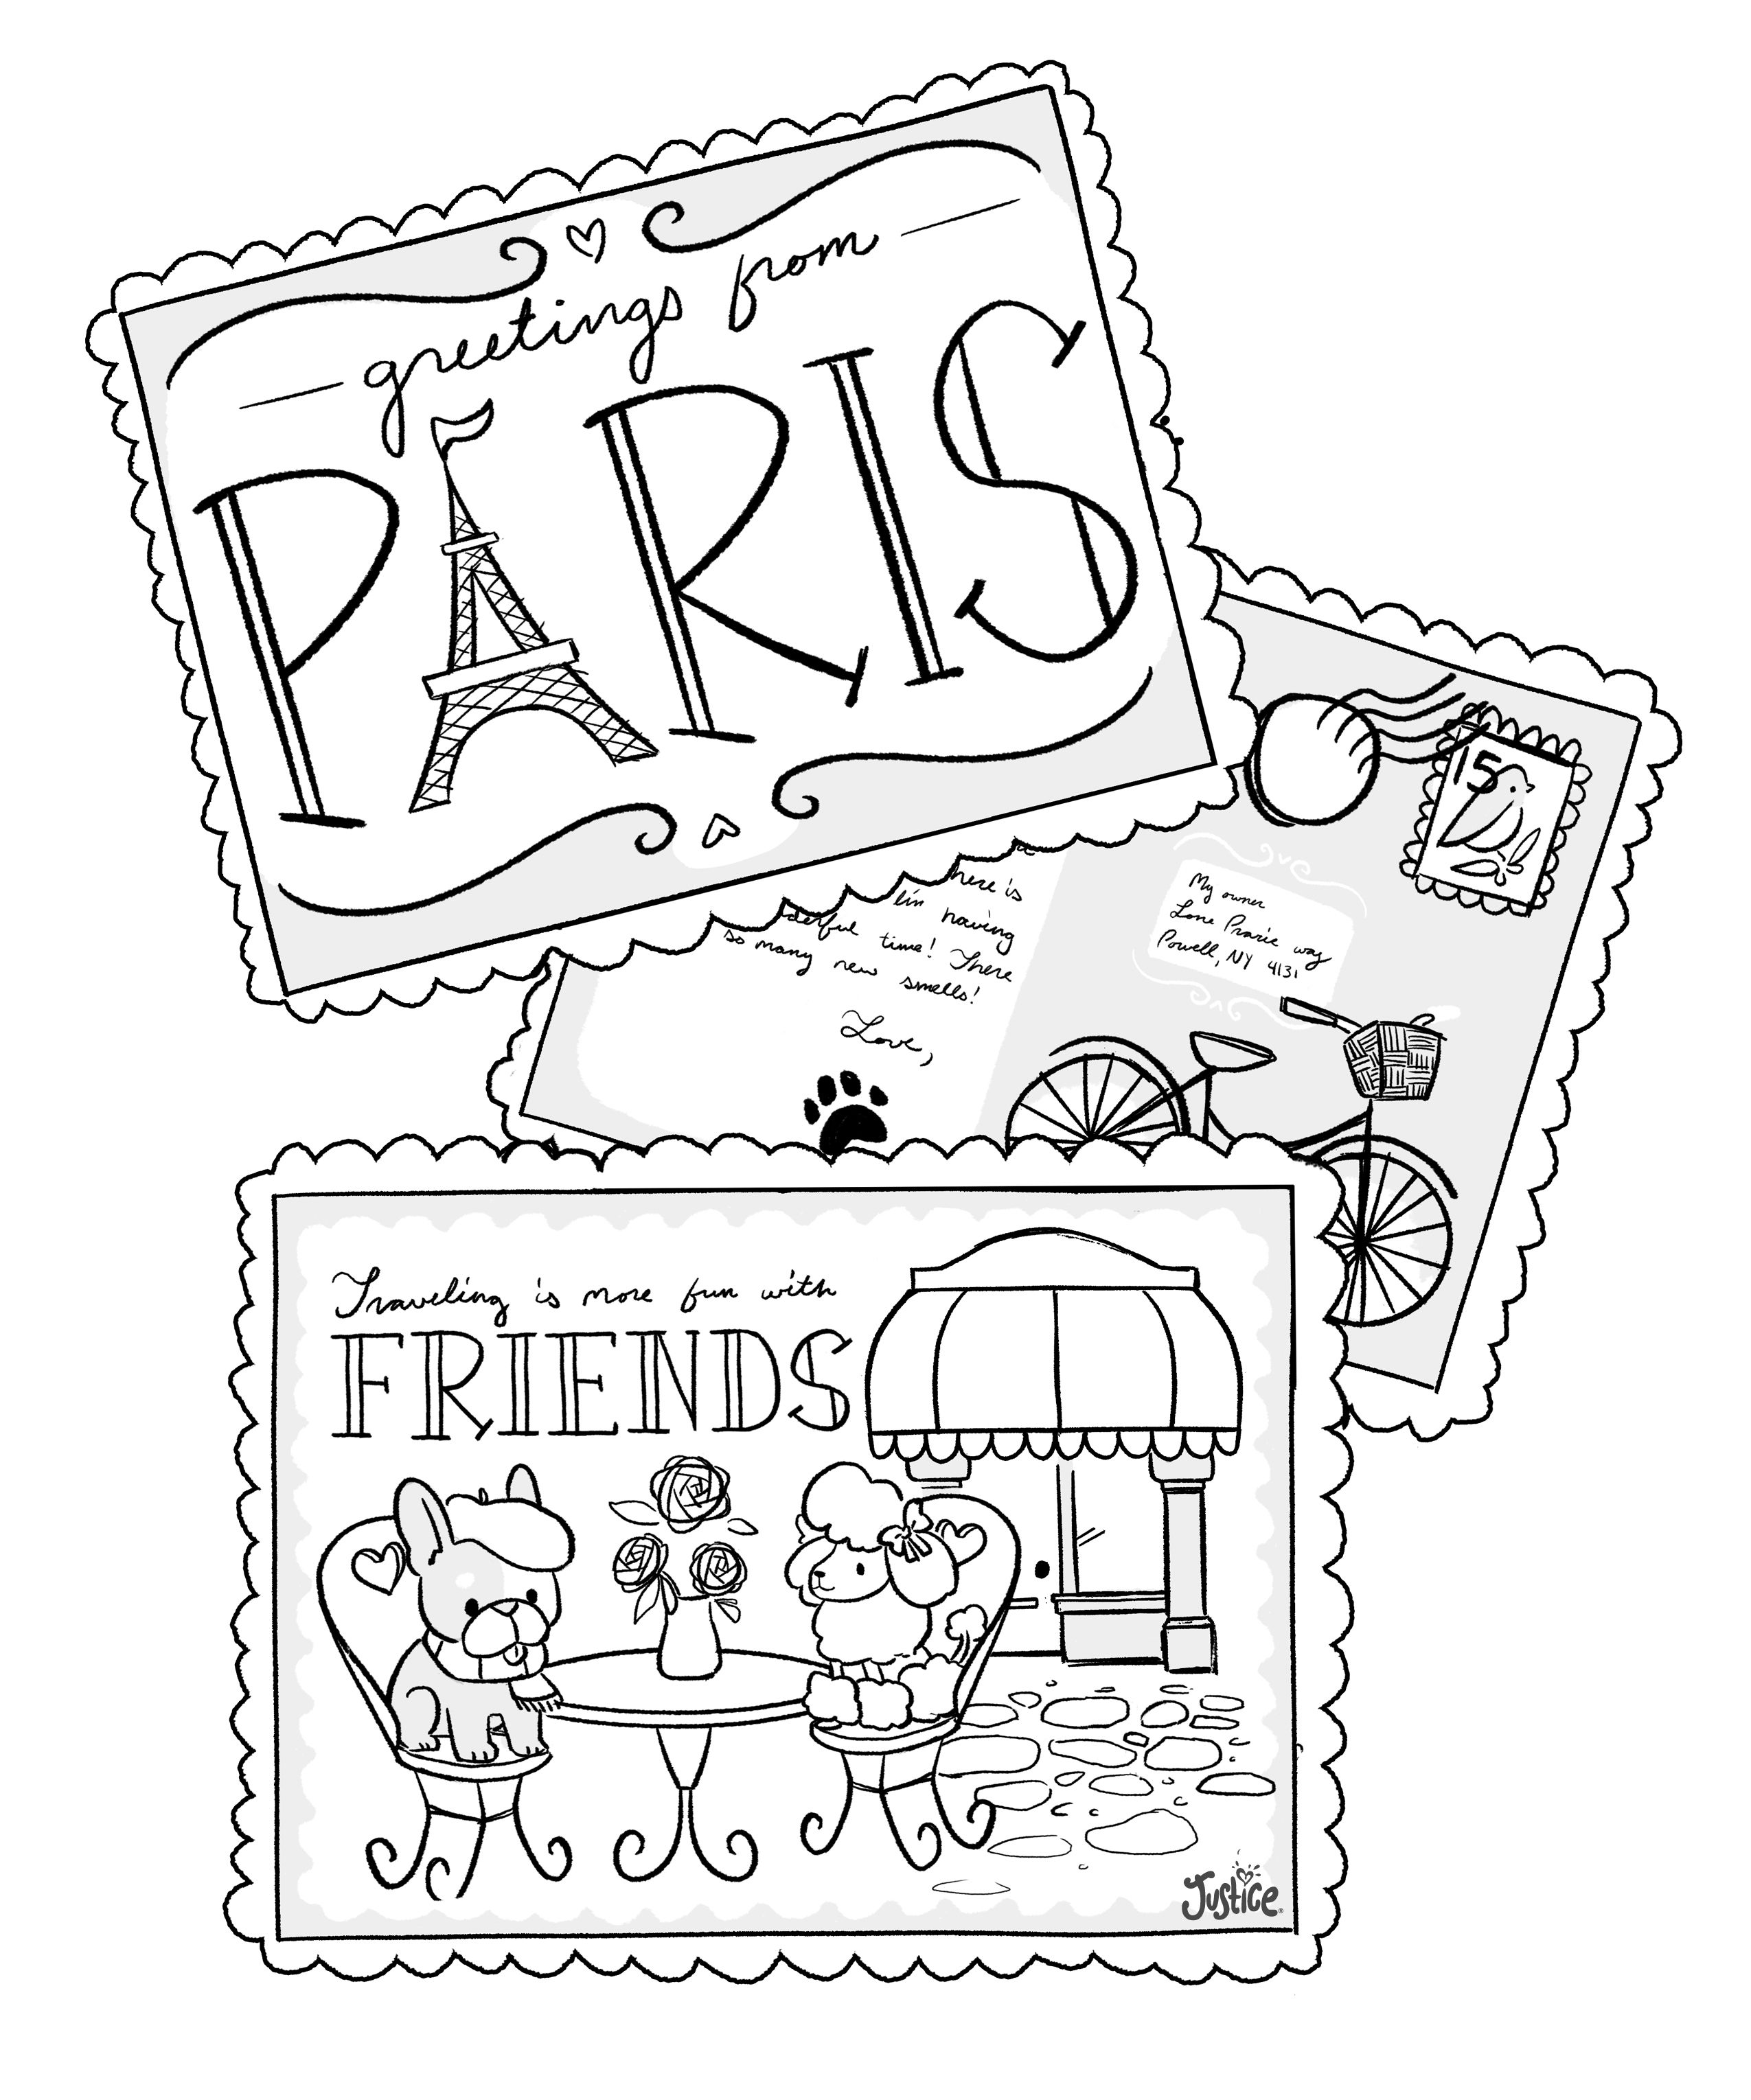 Color These Pretty Pictures To Pass The Time On Your Spring Break